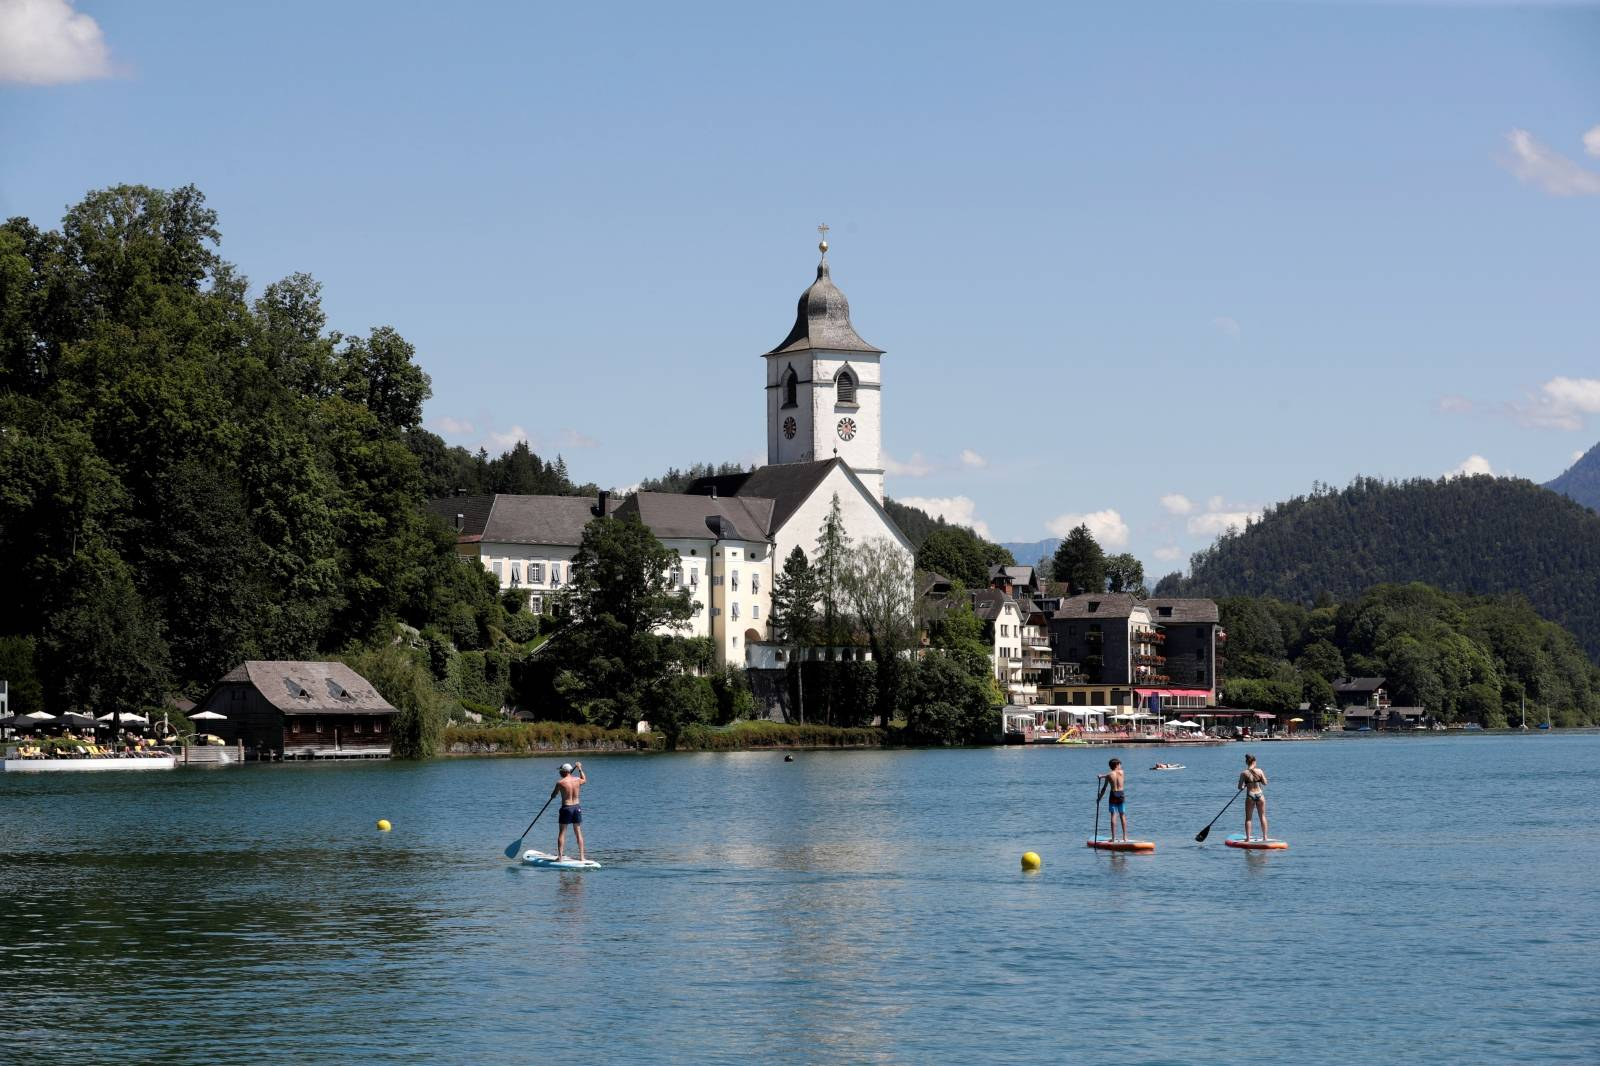 Stand-up paddlers are seen on Lake Wolfgangsee in front of St. Wolfgang